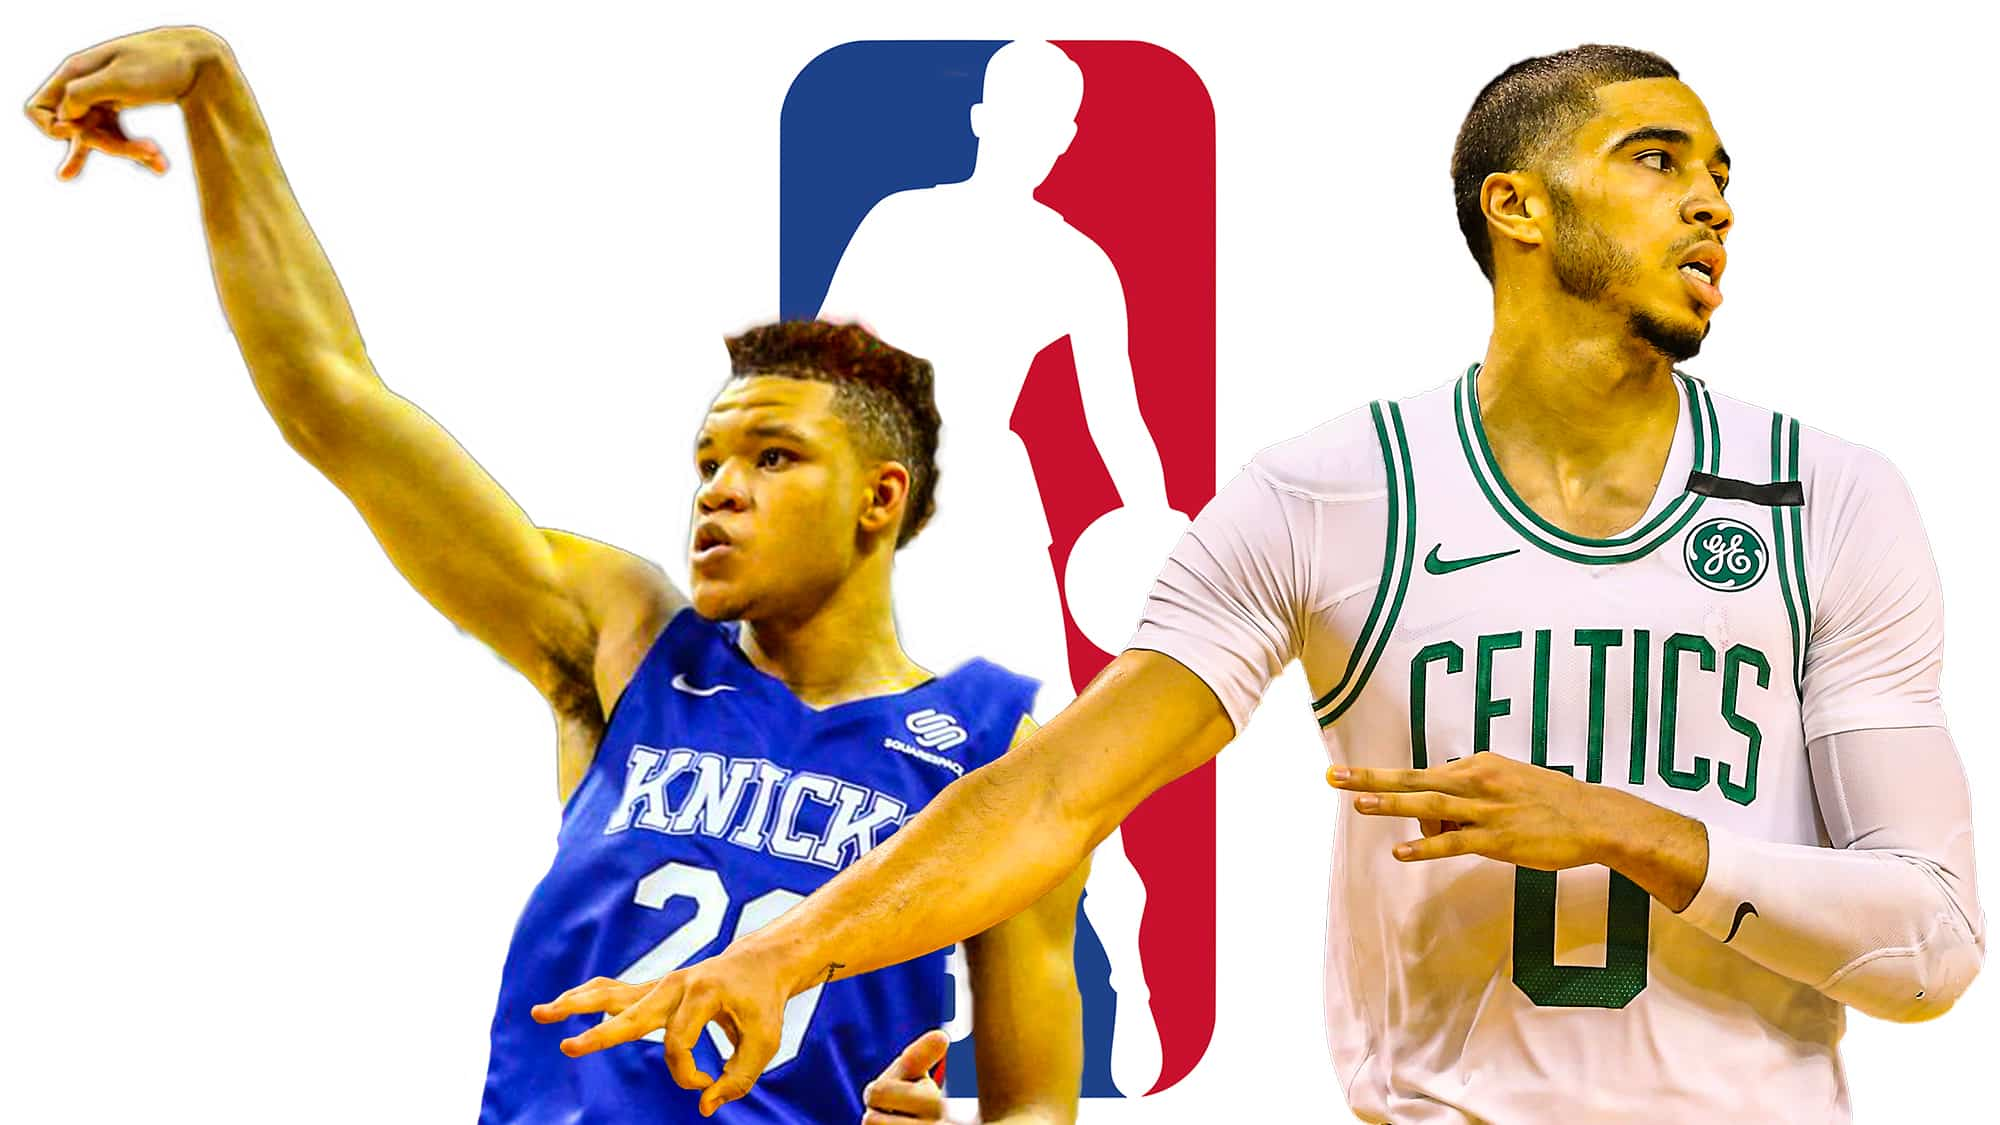 100% authentic 6049c ef5ef New York Knicks rook Kevin Knox could be the next Jayson Tatum